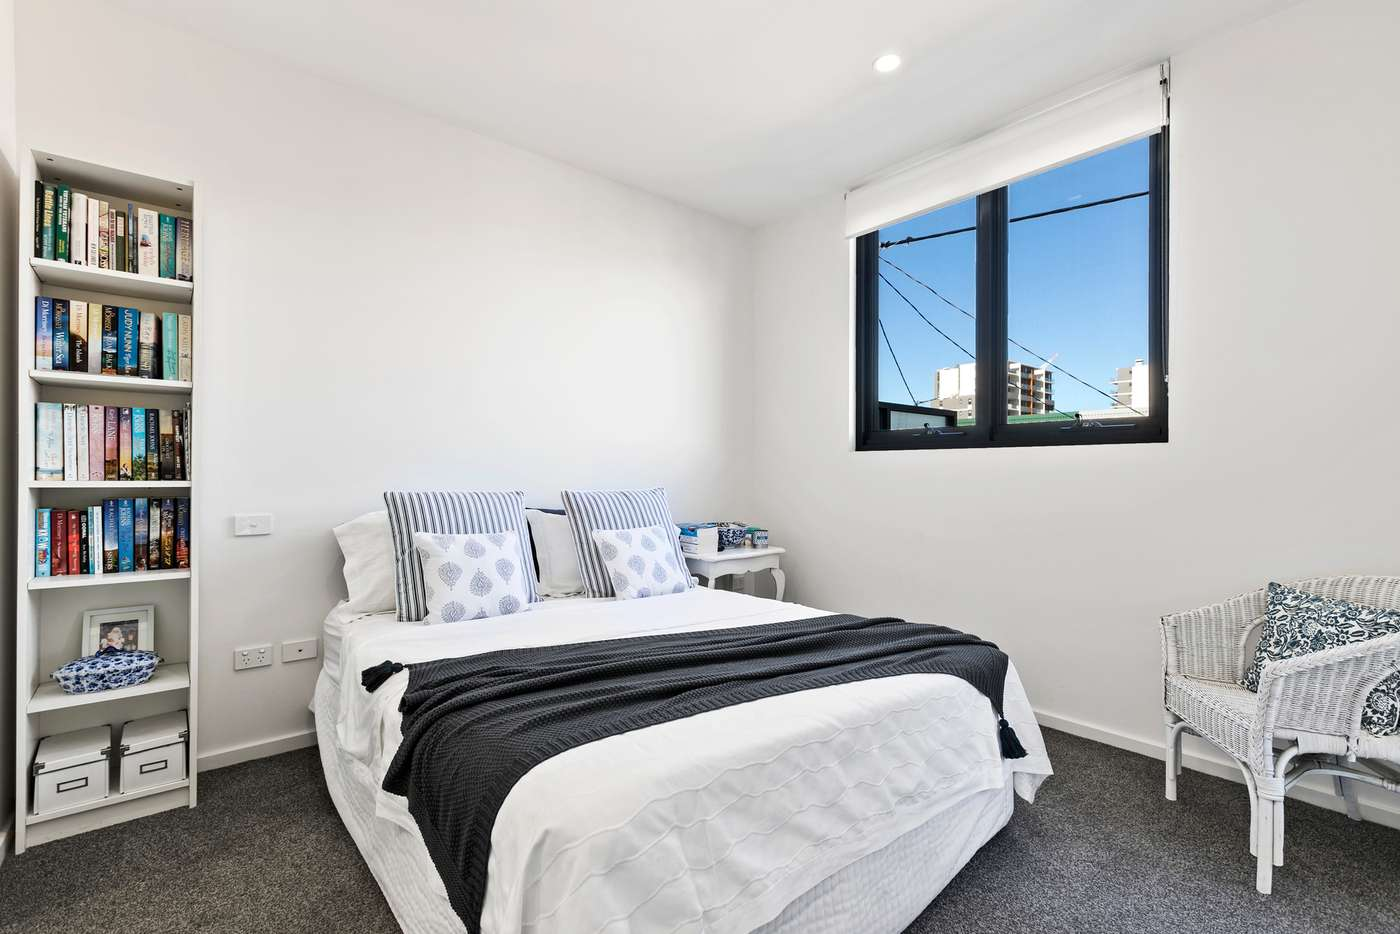 Sixth view of Homely unit listing, 120/18 Throsby Street, Wickham NSW 2293